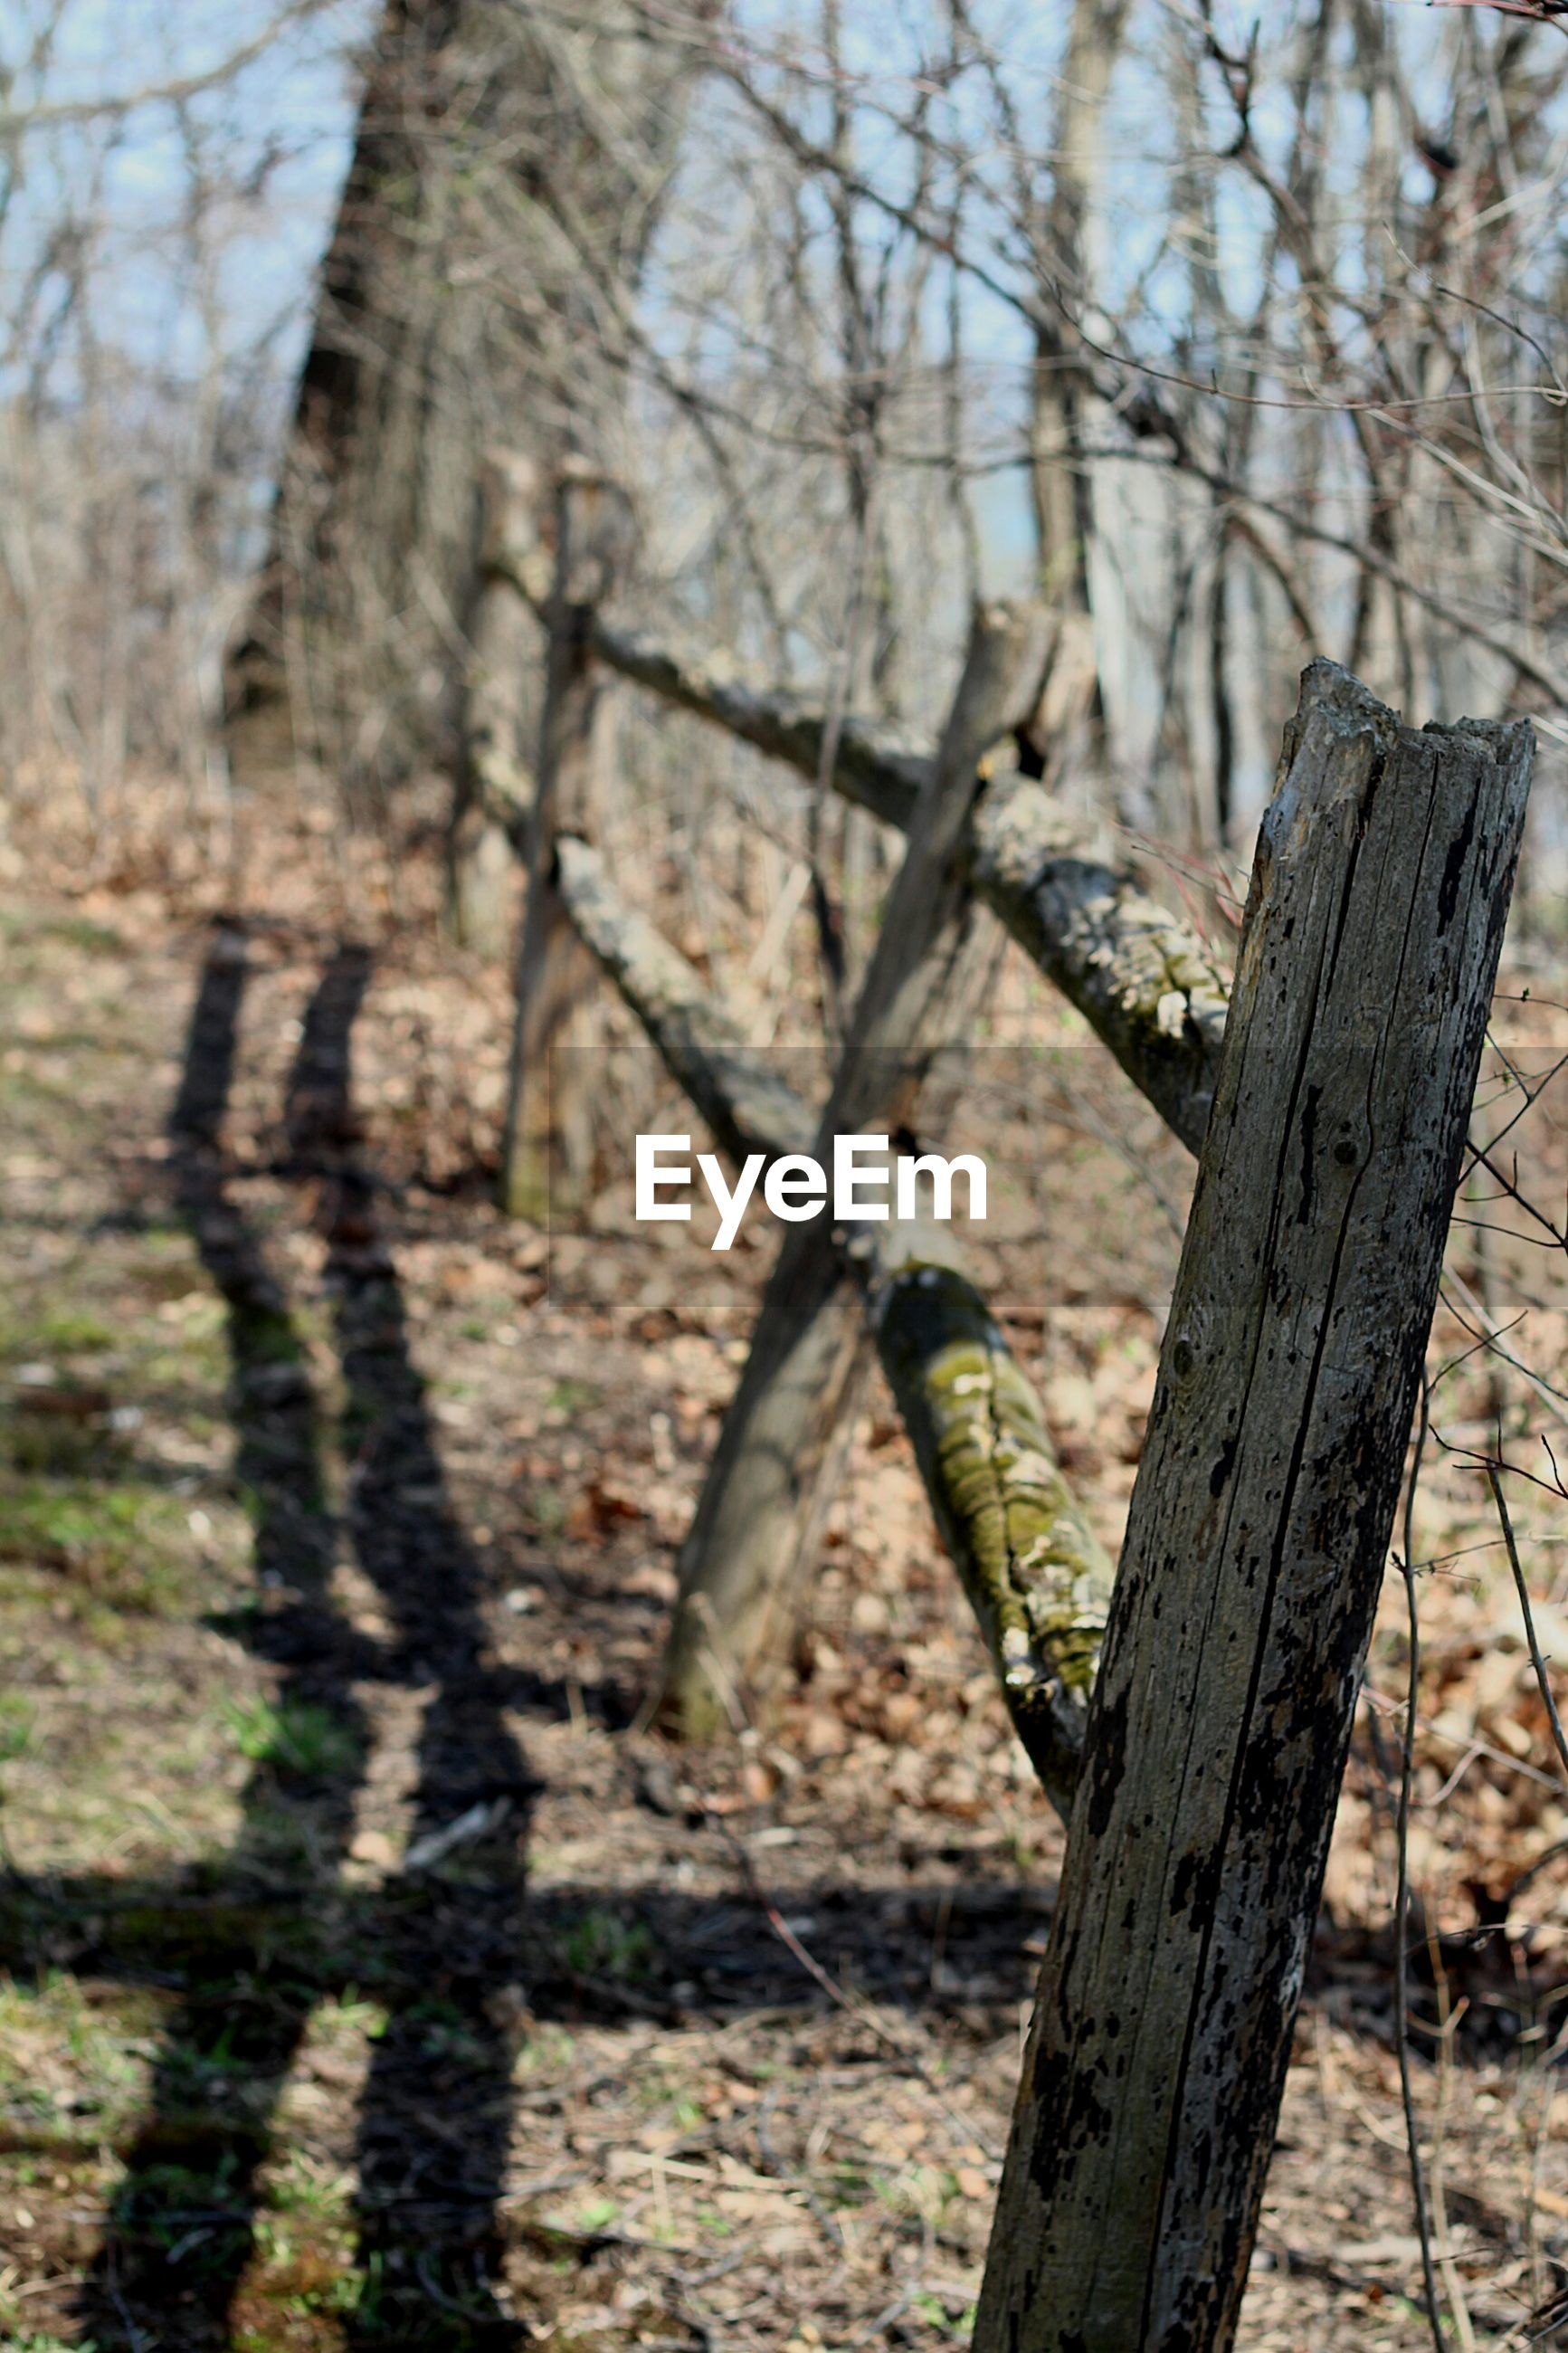 Wooden fence with shadow on field in forest